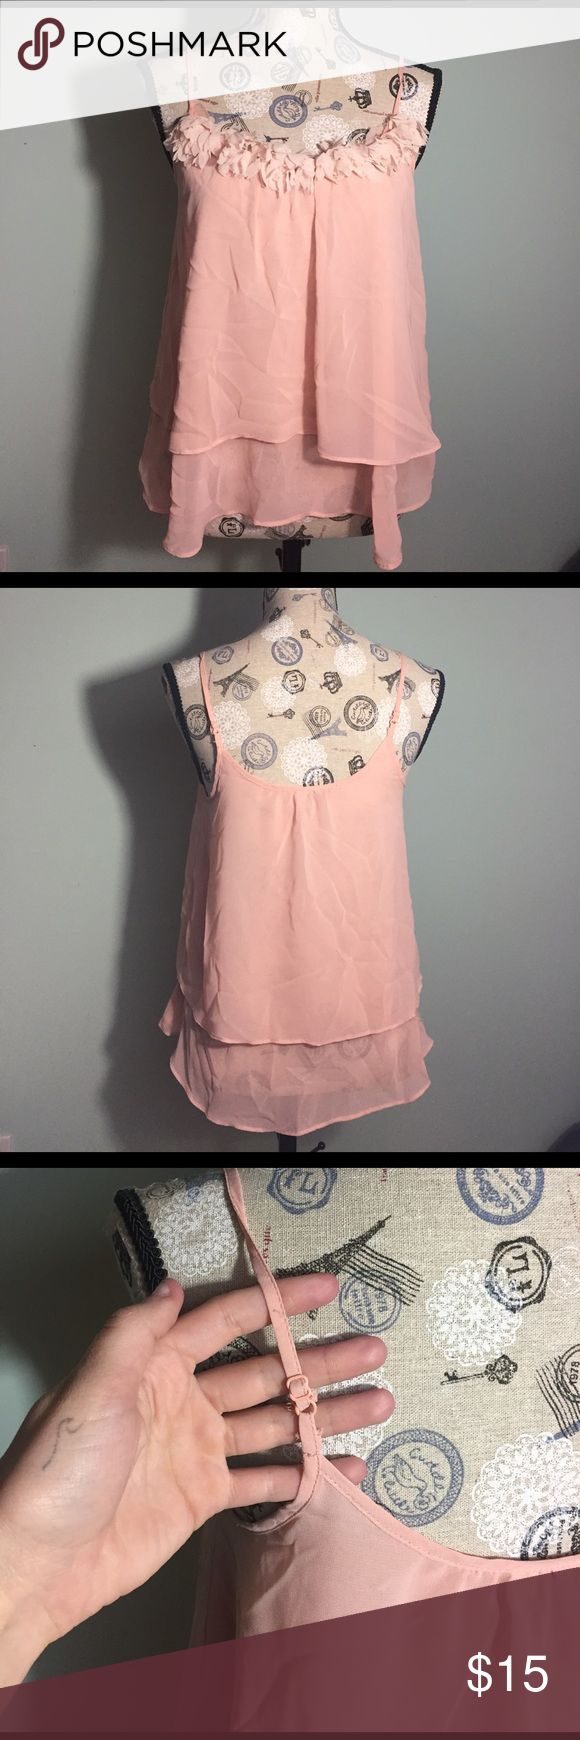 Baby pink tank top with frills This pink tank top is perfect to wear with a pair of jeans and some wedges for a girls night out. The fabric is light and airy for the summer time of can be paired with a sweater for a cute fall outfit. The tank is in perfect condition and has working adjustable straps as well! LC Lauren Conrad Tops Tank Tops